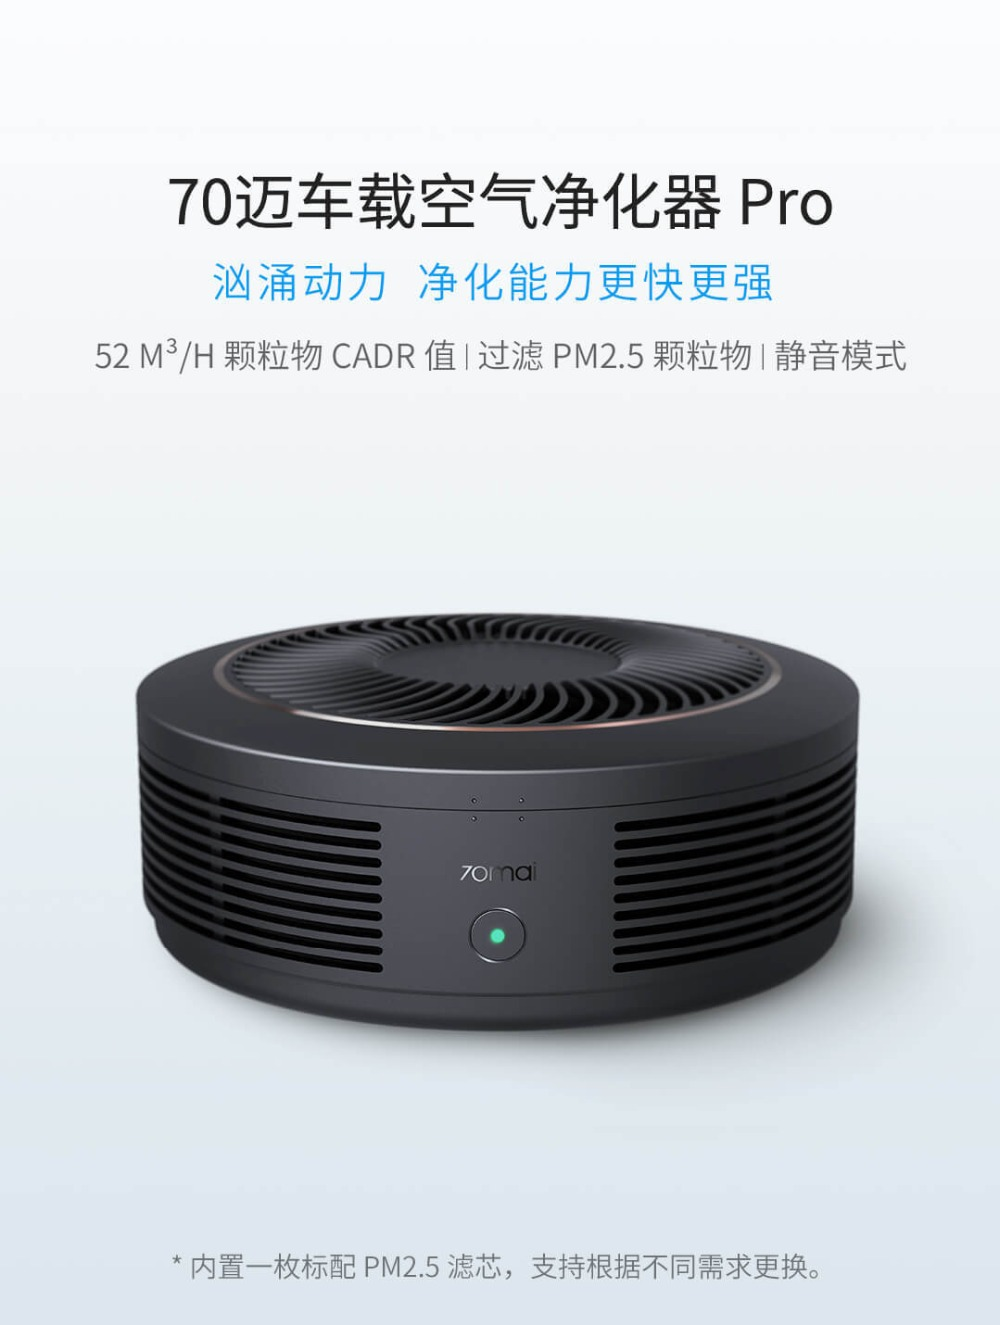 Xiaomi 70mai Air Purifier Pro Air Cleaner Mute Filter Phone Smart Control Remove PM2.5 Smoke Odor Dust Formaldehyde for Home,Car (3)